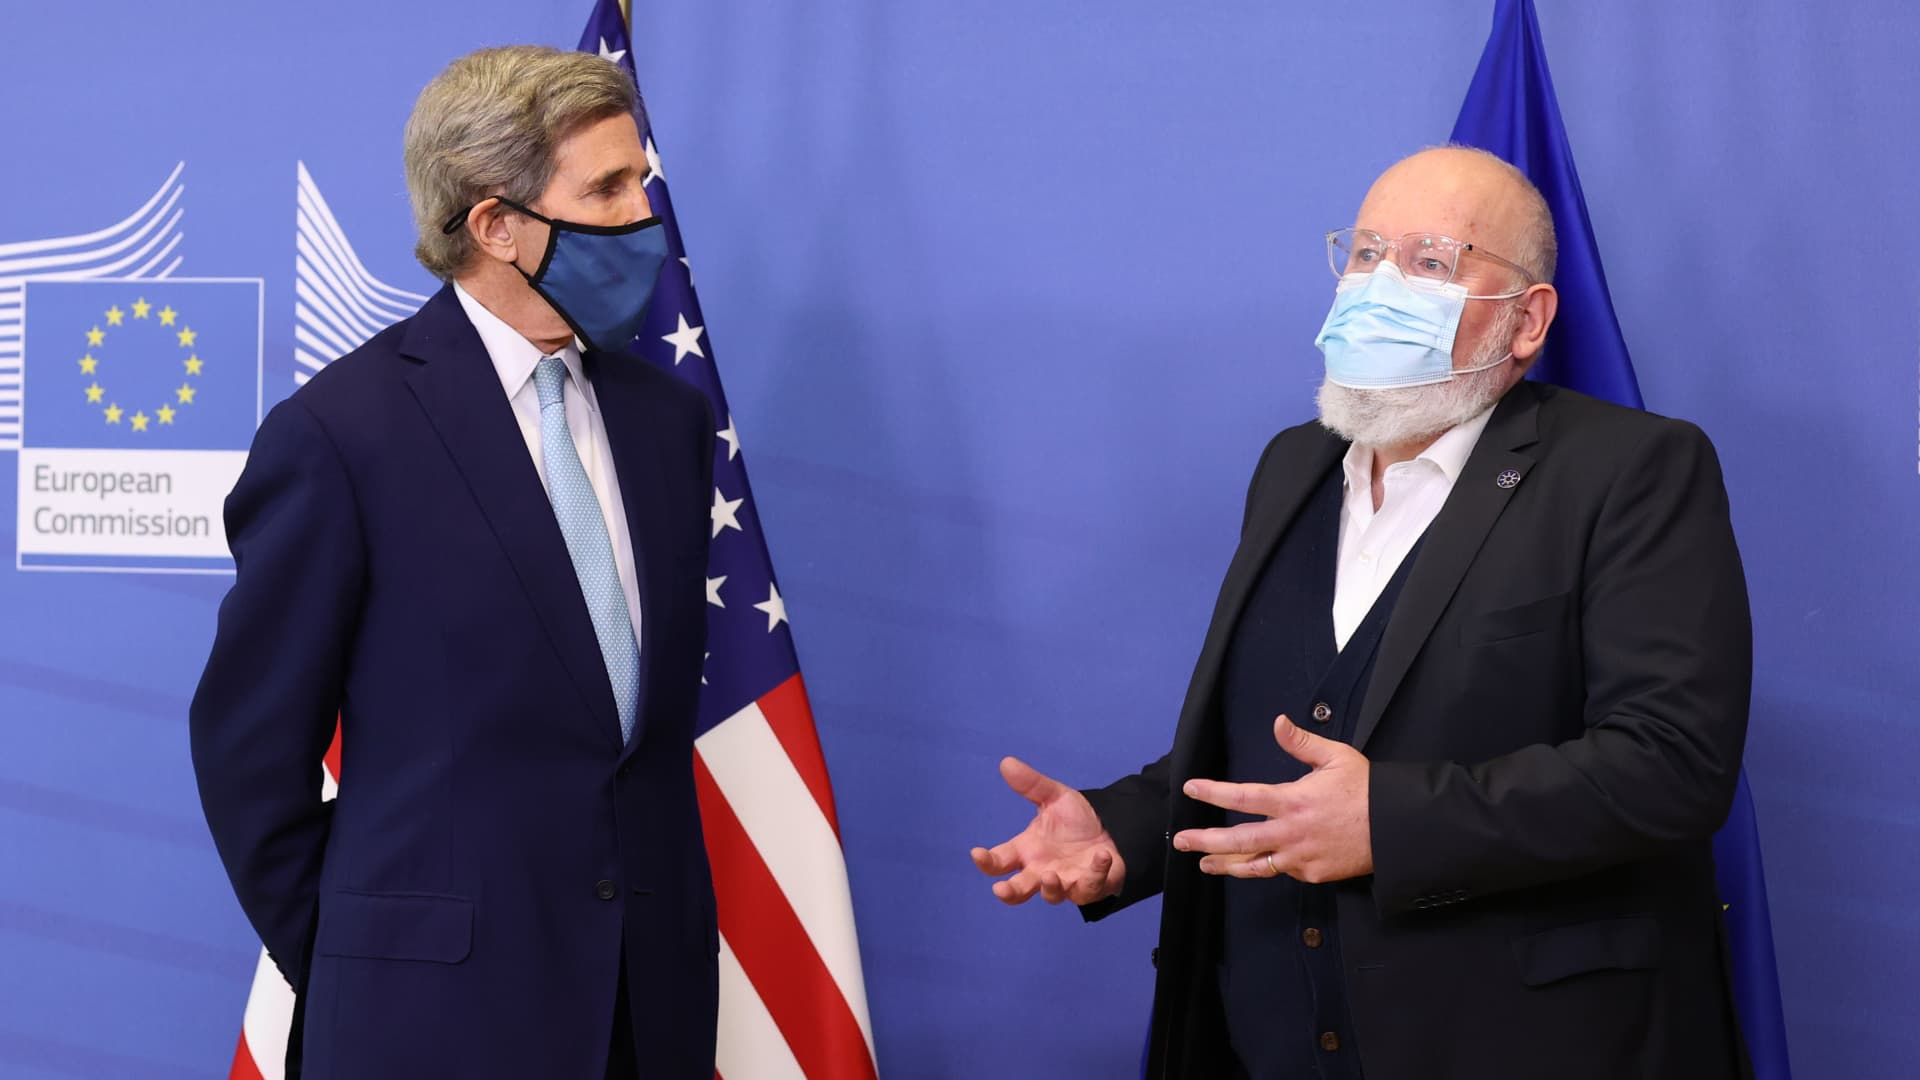 U.S. Special Presidential Envoy for Climate John Kerry (L) and European Commission vice-president in charge for European green deal Frans Timmermans (R) give a joint news conference in Brussels, Belgium on March 9, 2021.